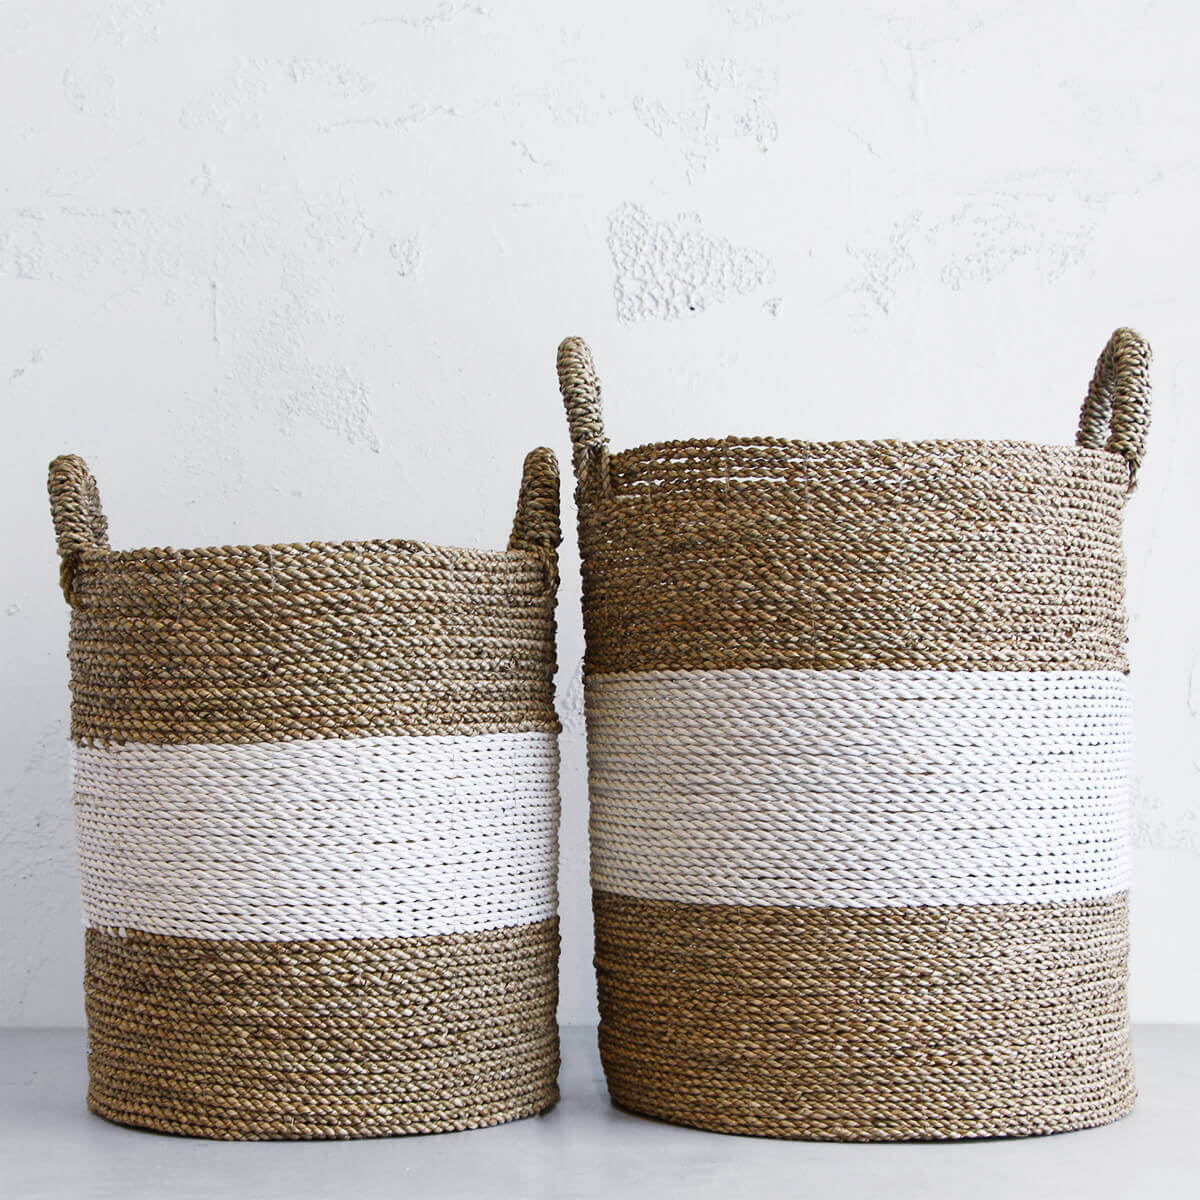 SEAGRASS STORAGE BASKETS  |  POT PLANTS  |  GREEN INTERIOR